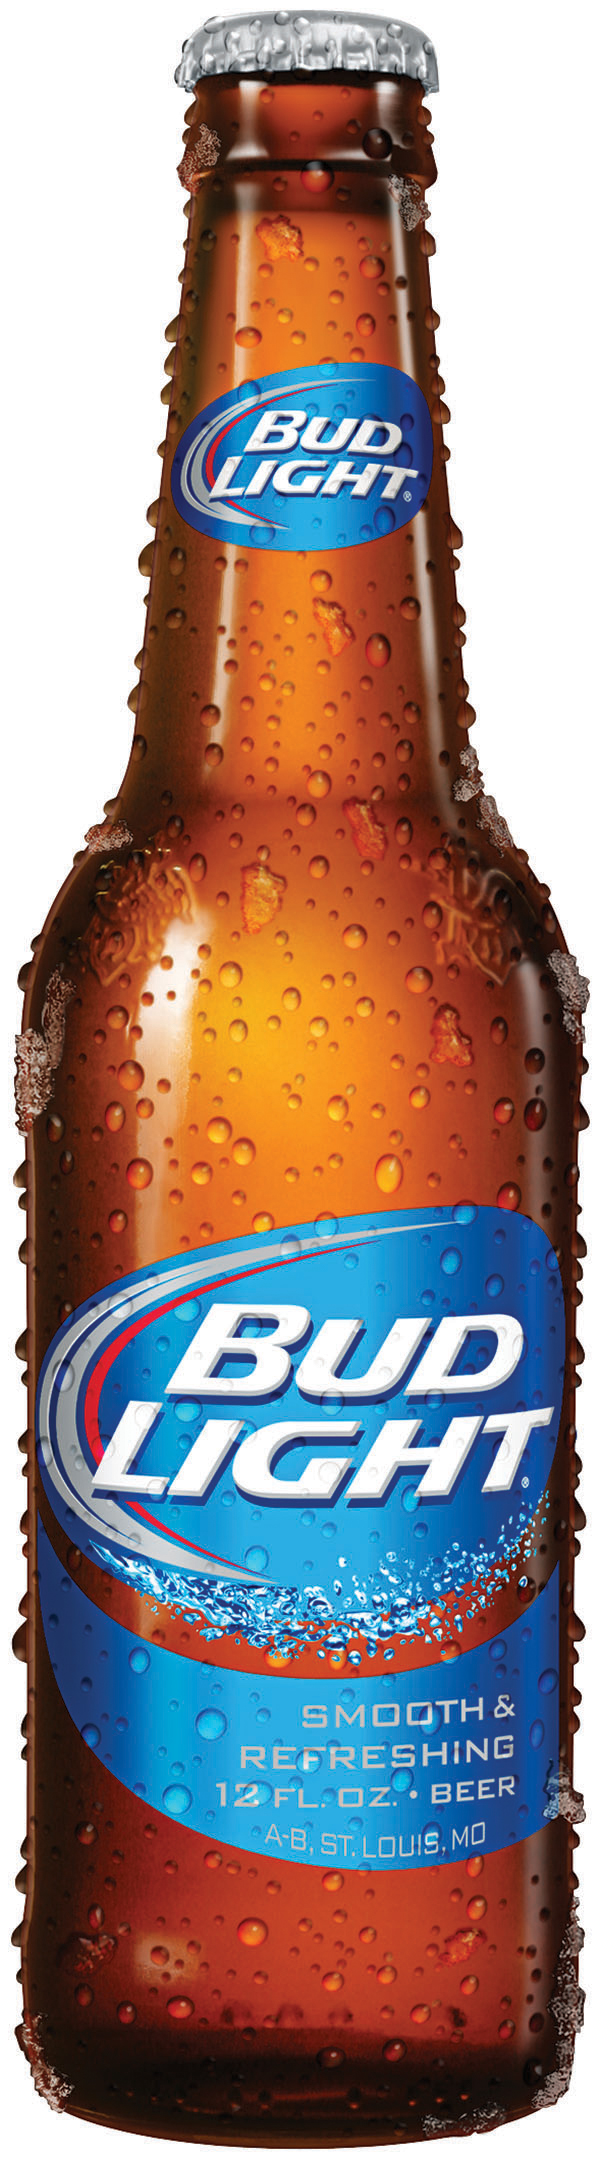 bud light bud light bud light bud light bud light 601x2160